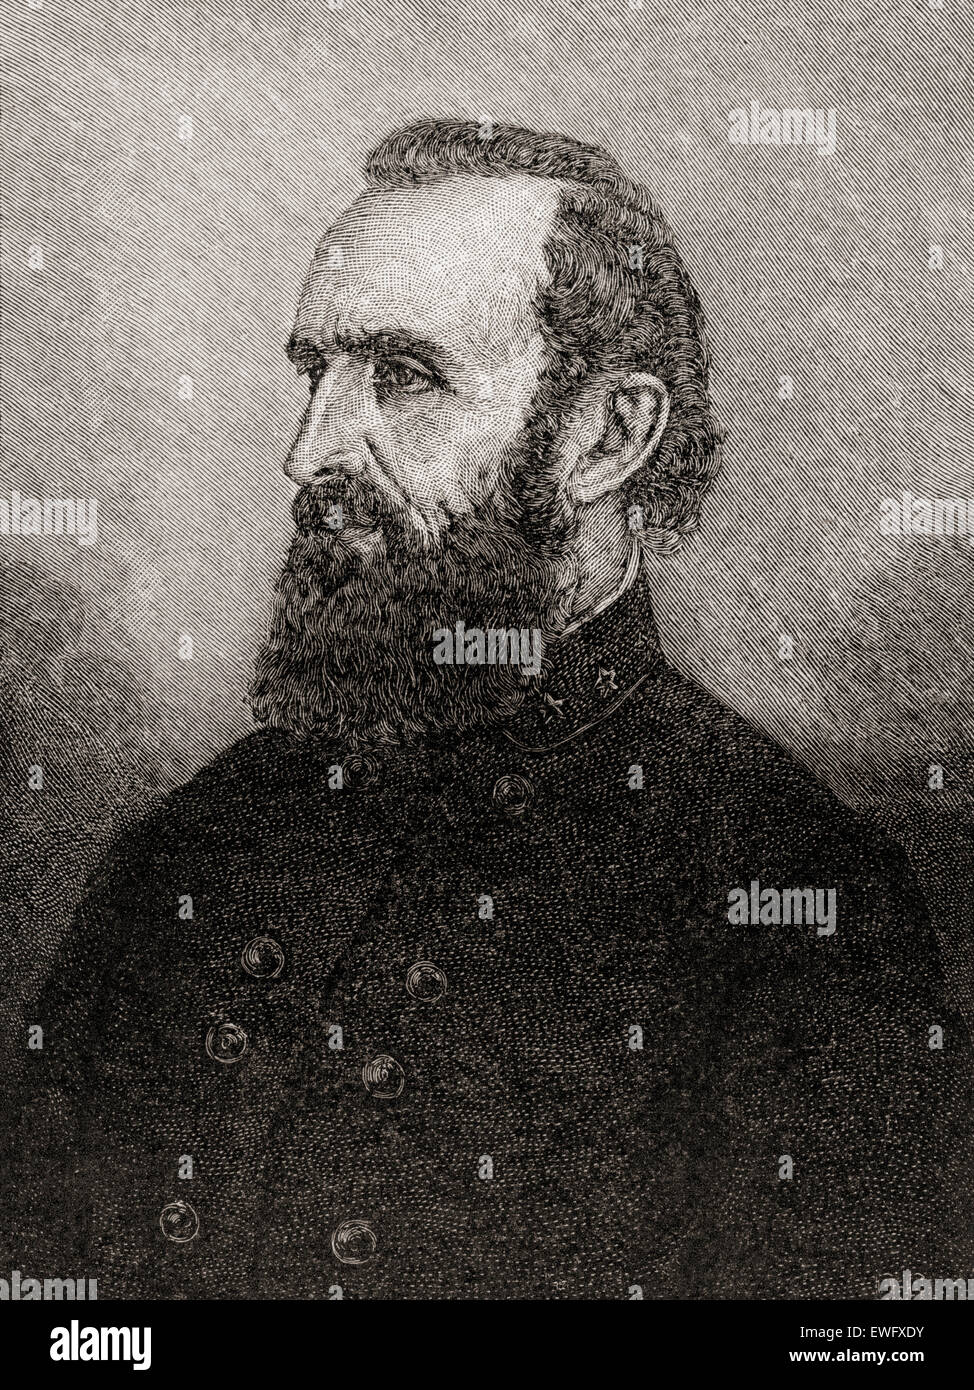 Thomas Jonathan 'Stonewall' Jackson, 1824 –1863.  Confederate general during the American Civil War. - Stock Image